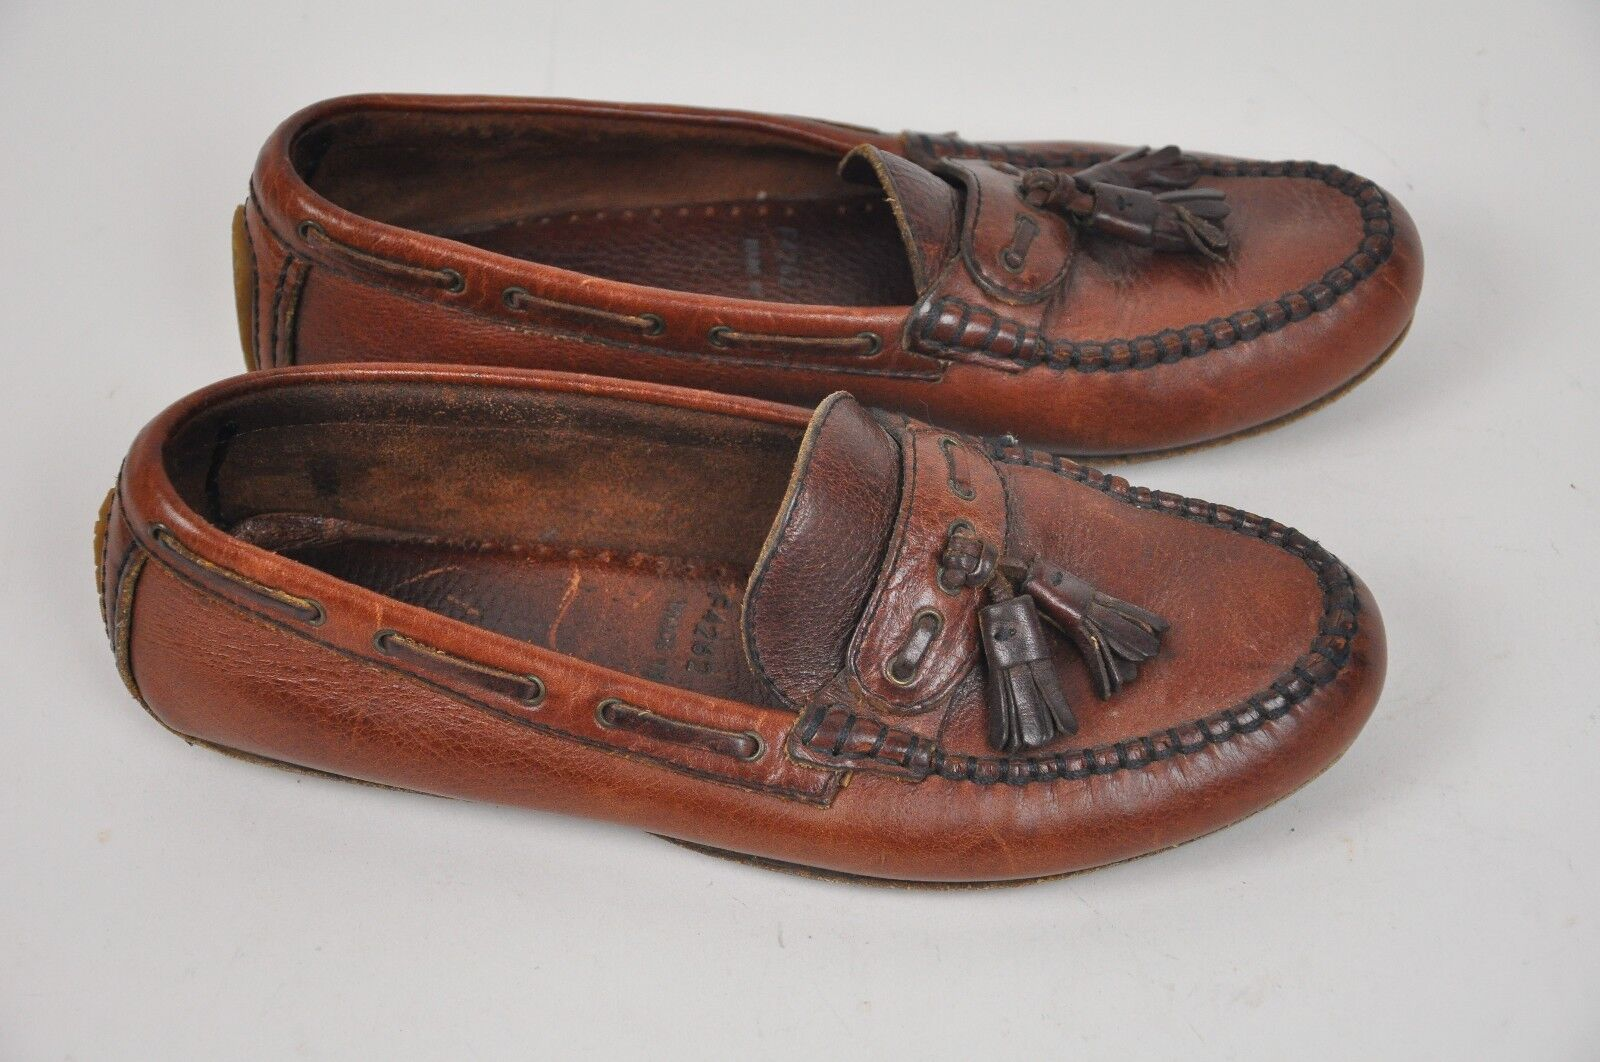 Women's COLE HAAN Country Brown LEATHER Loafers TASSELS 7.5 M F4262 BRAZIL shoes